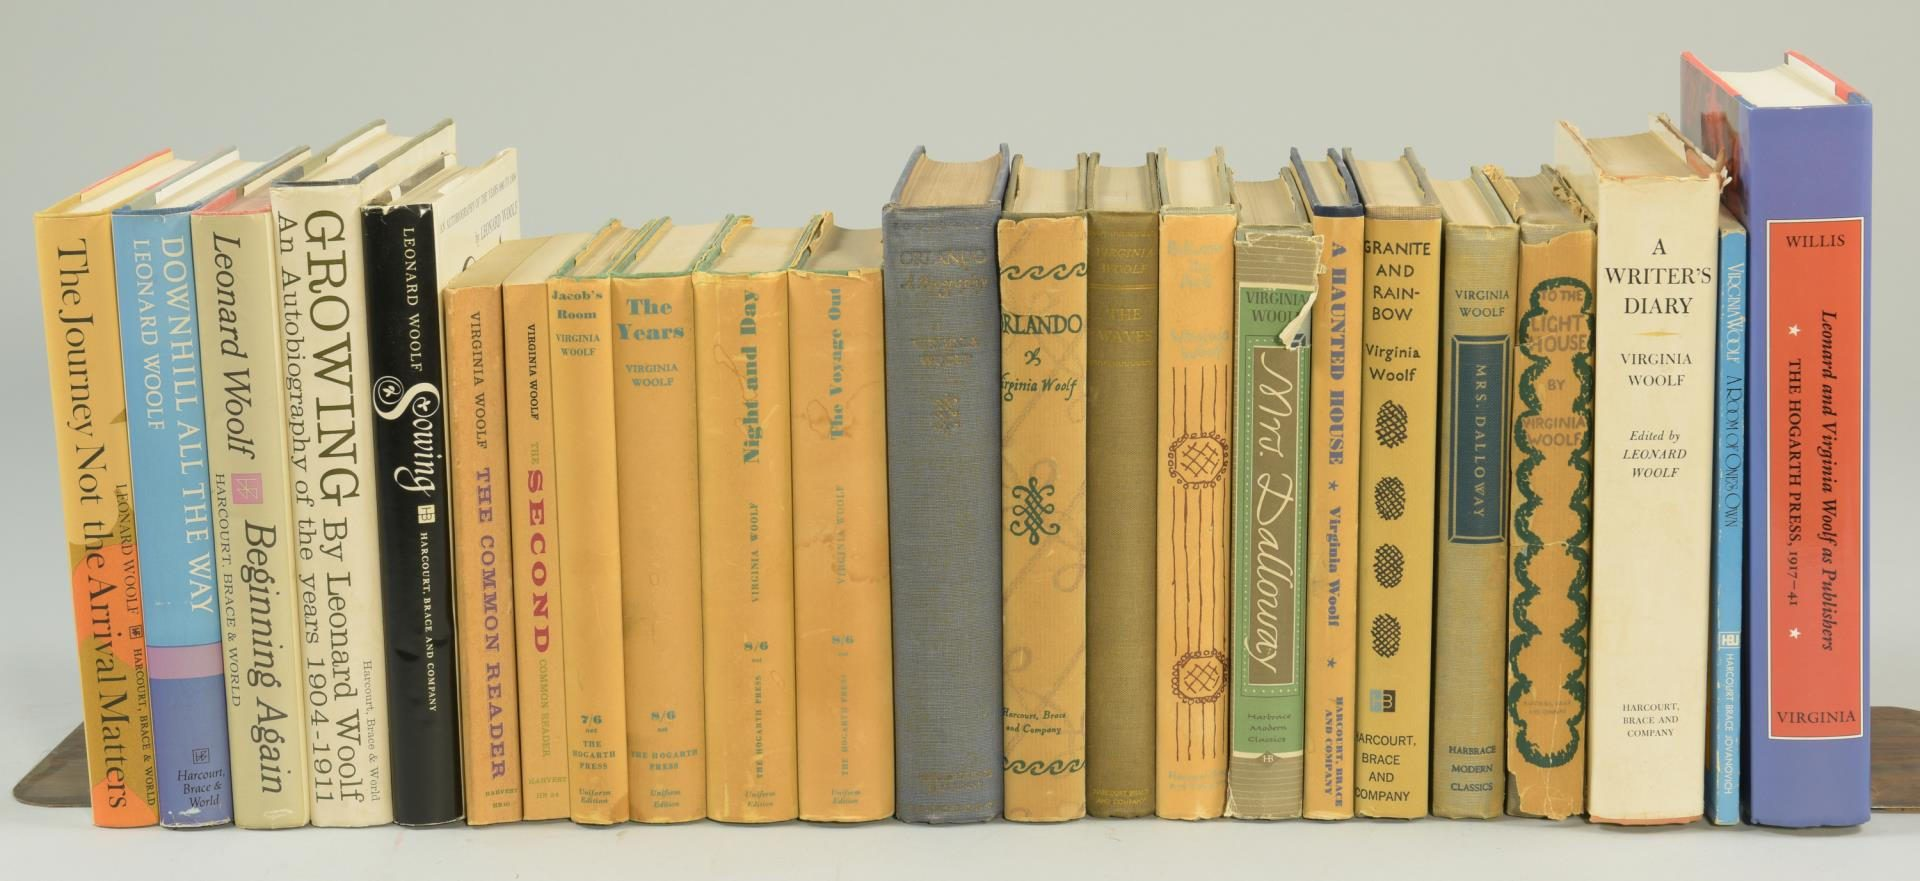 Lot 186: Lot of 40 Books by Virginia Woolf